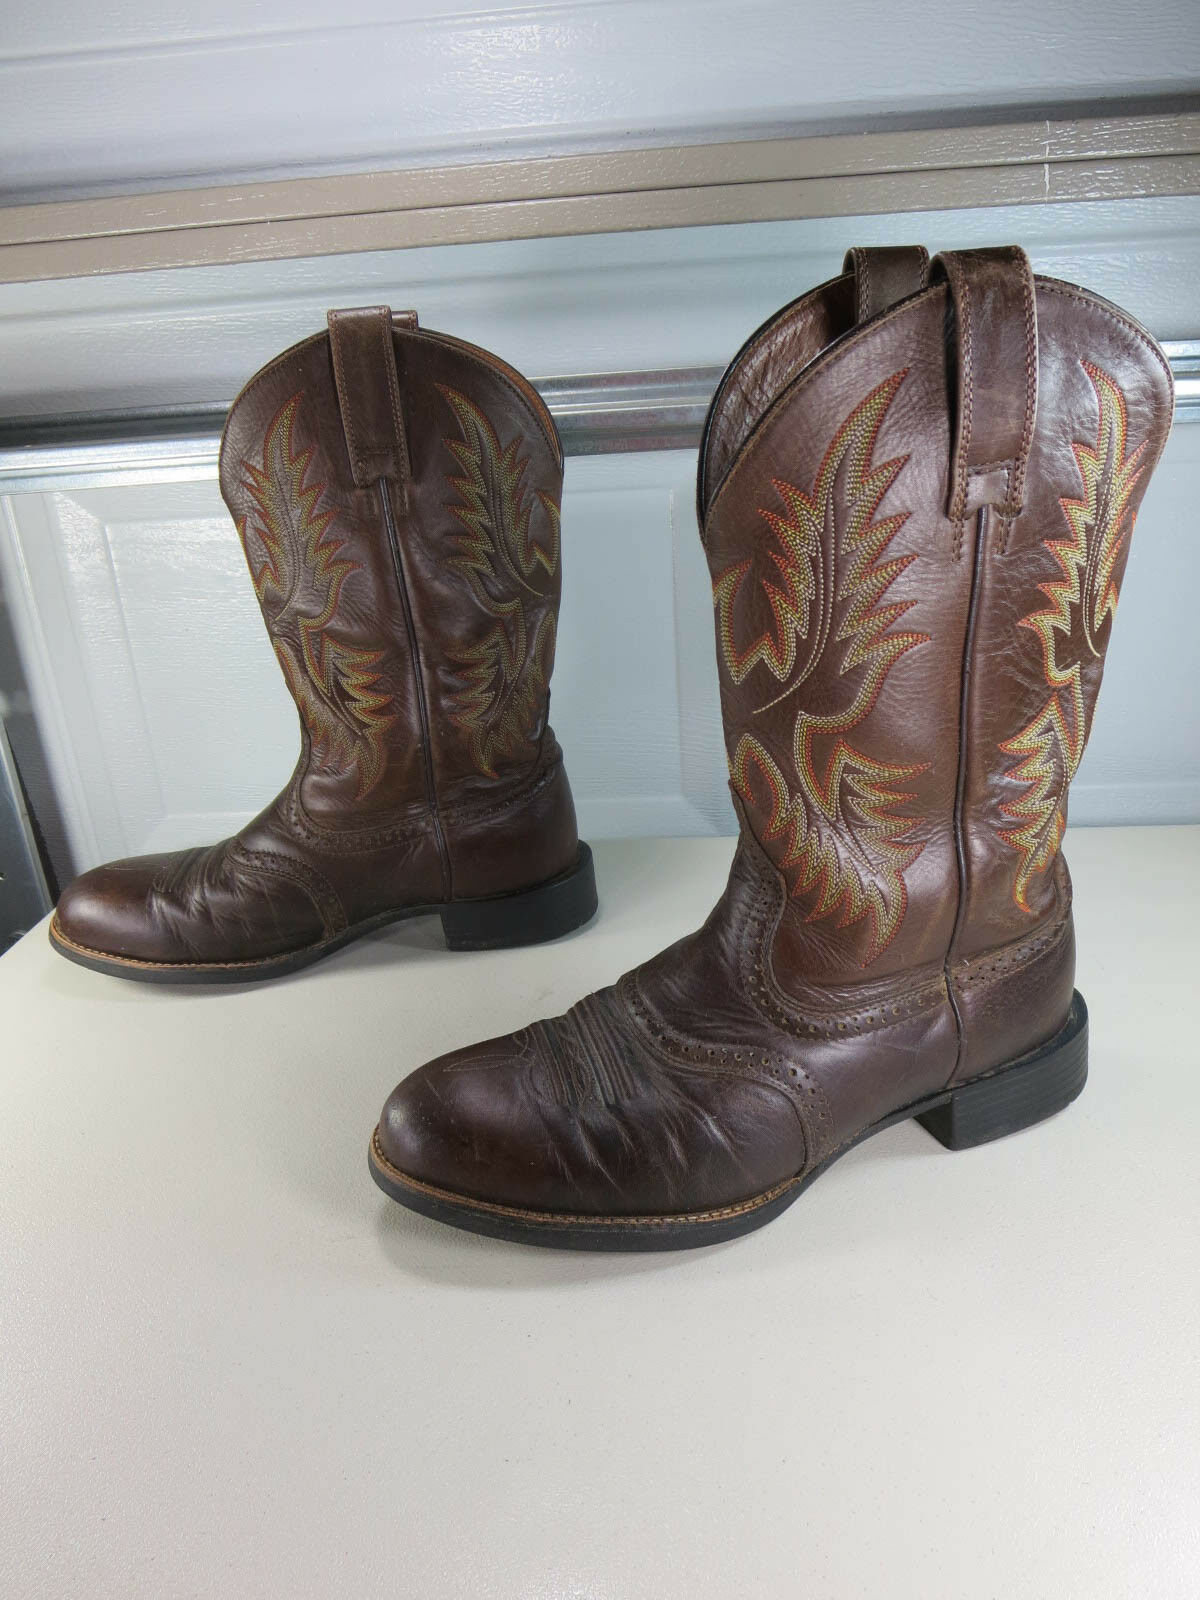 Ariat womens brown fire yellow Heritage STockman R toe cowboy 8.5 D VGUC